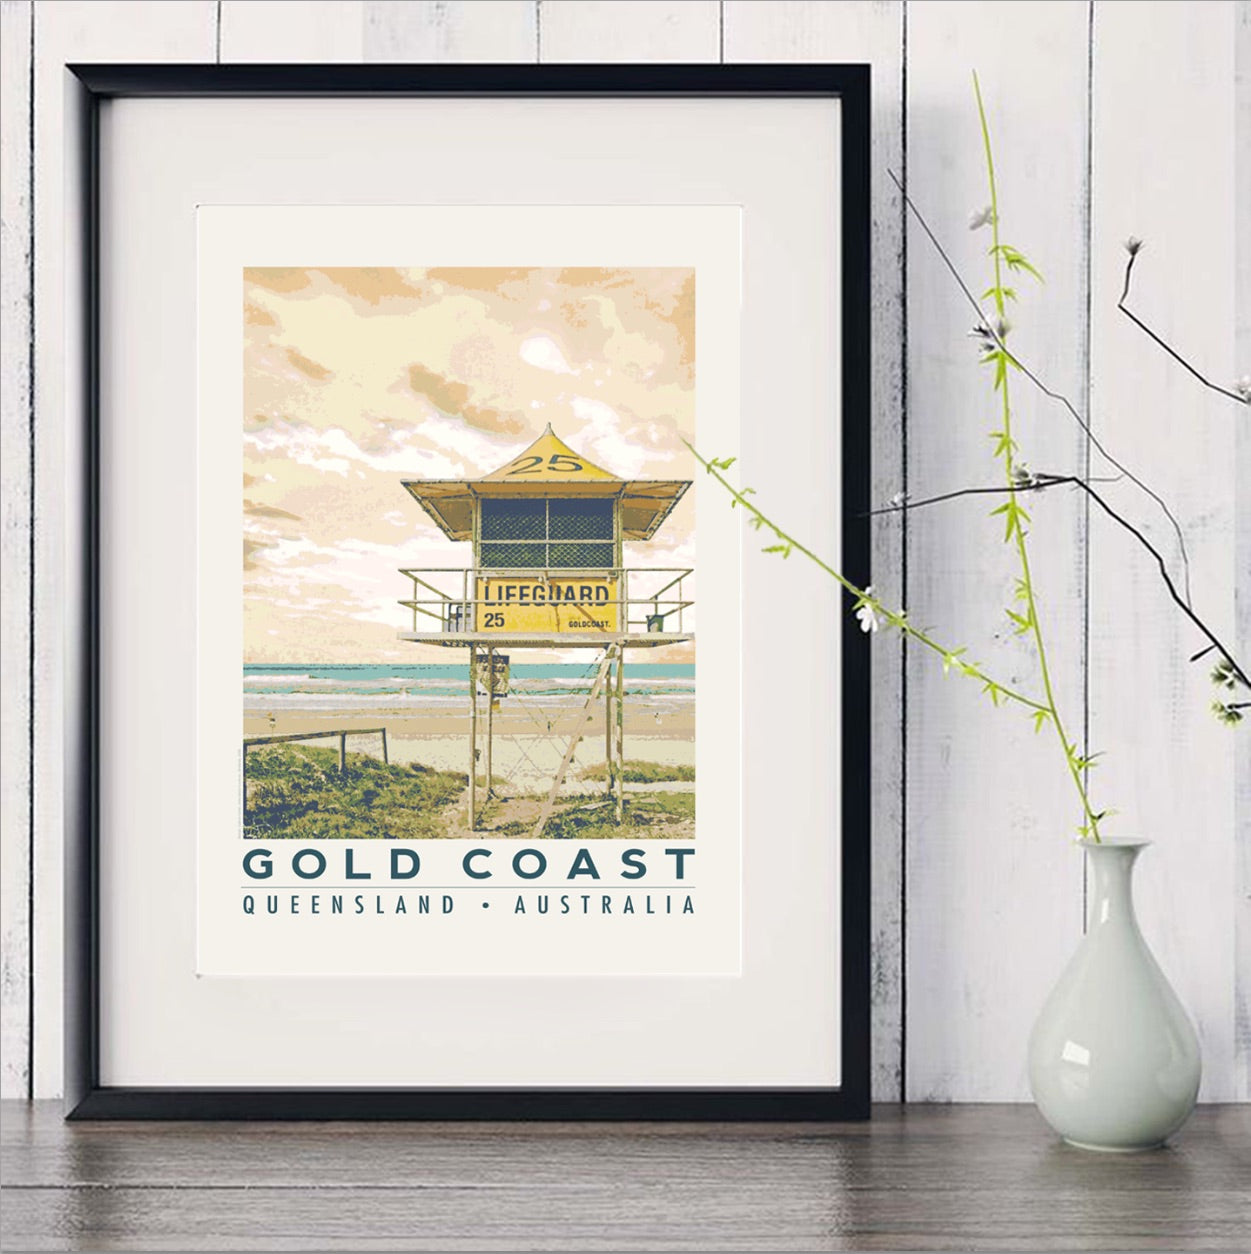 Gold Coast beach with lifeguard tower art print in black frame with white vase